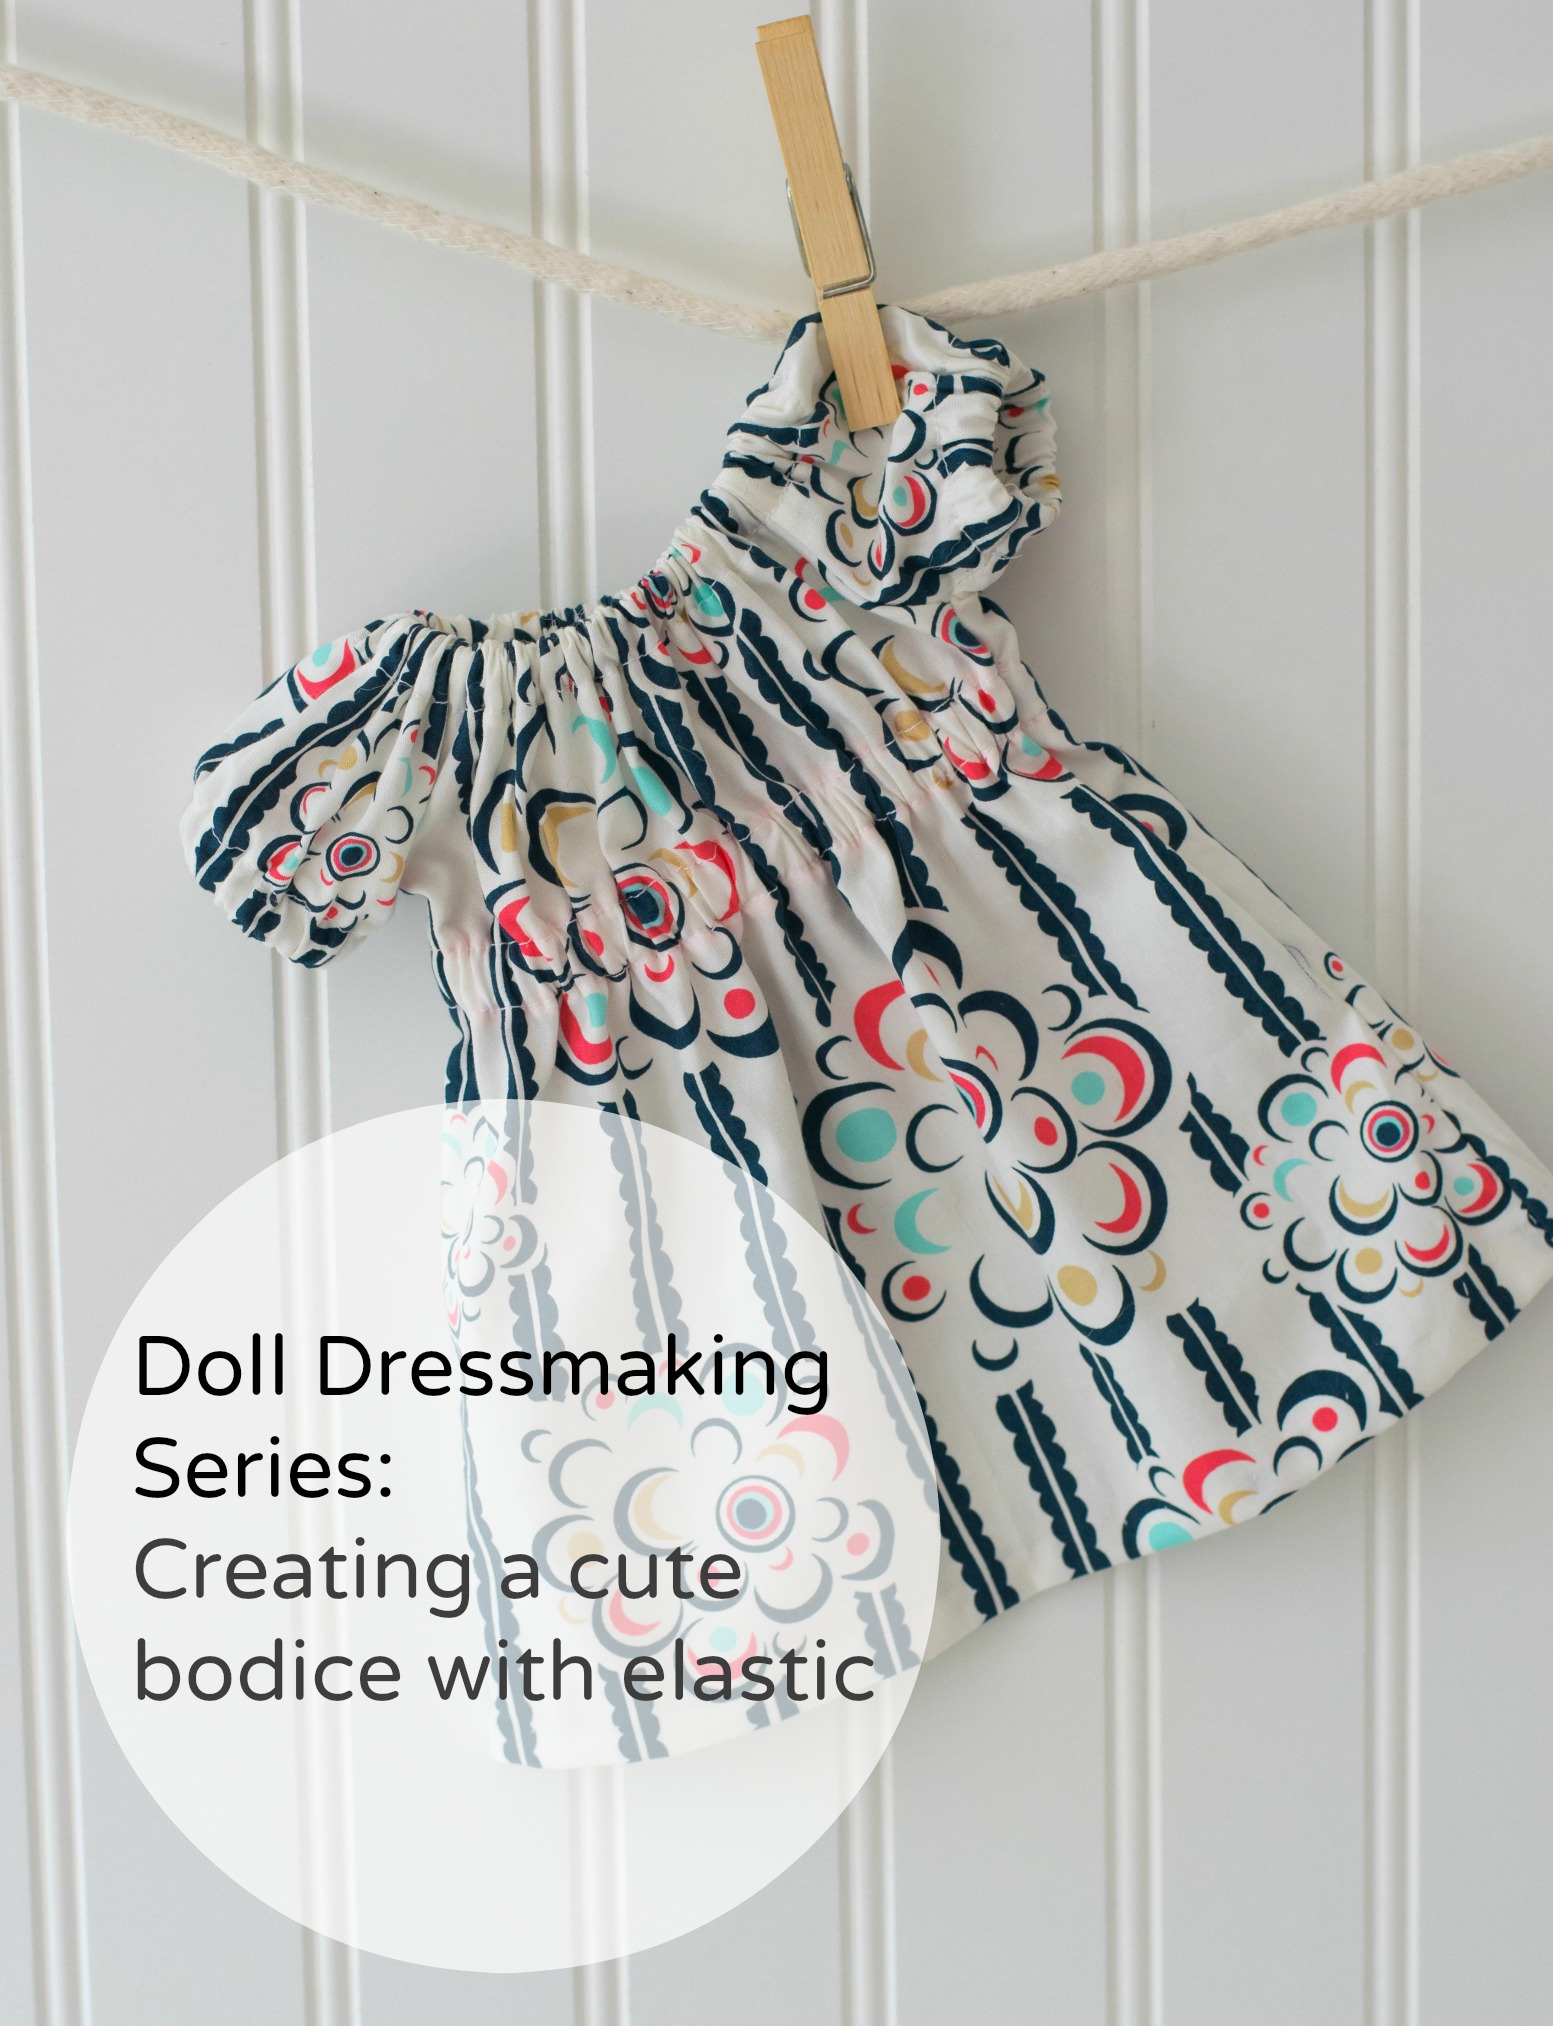 Doll Dressmaking Series